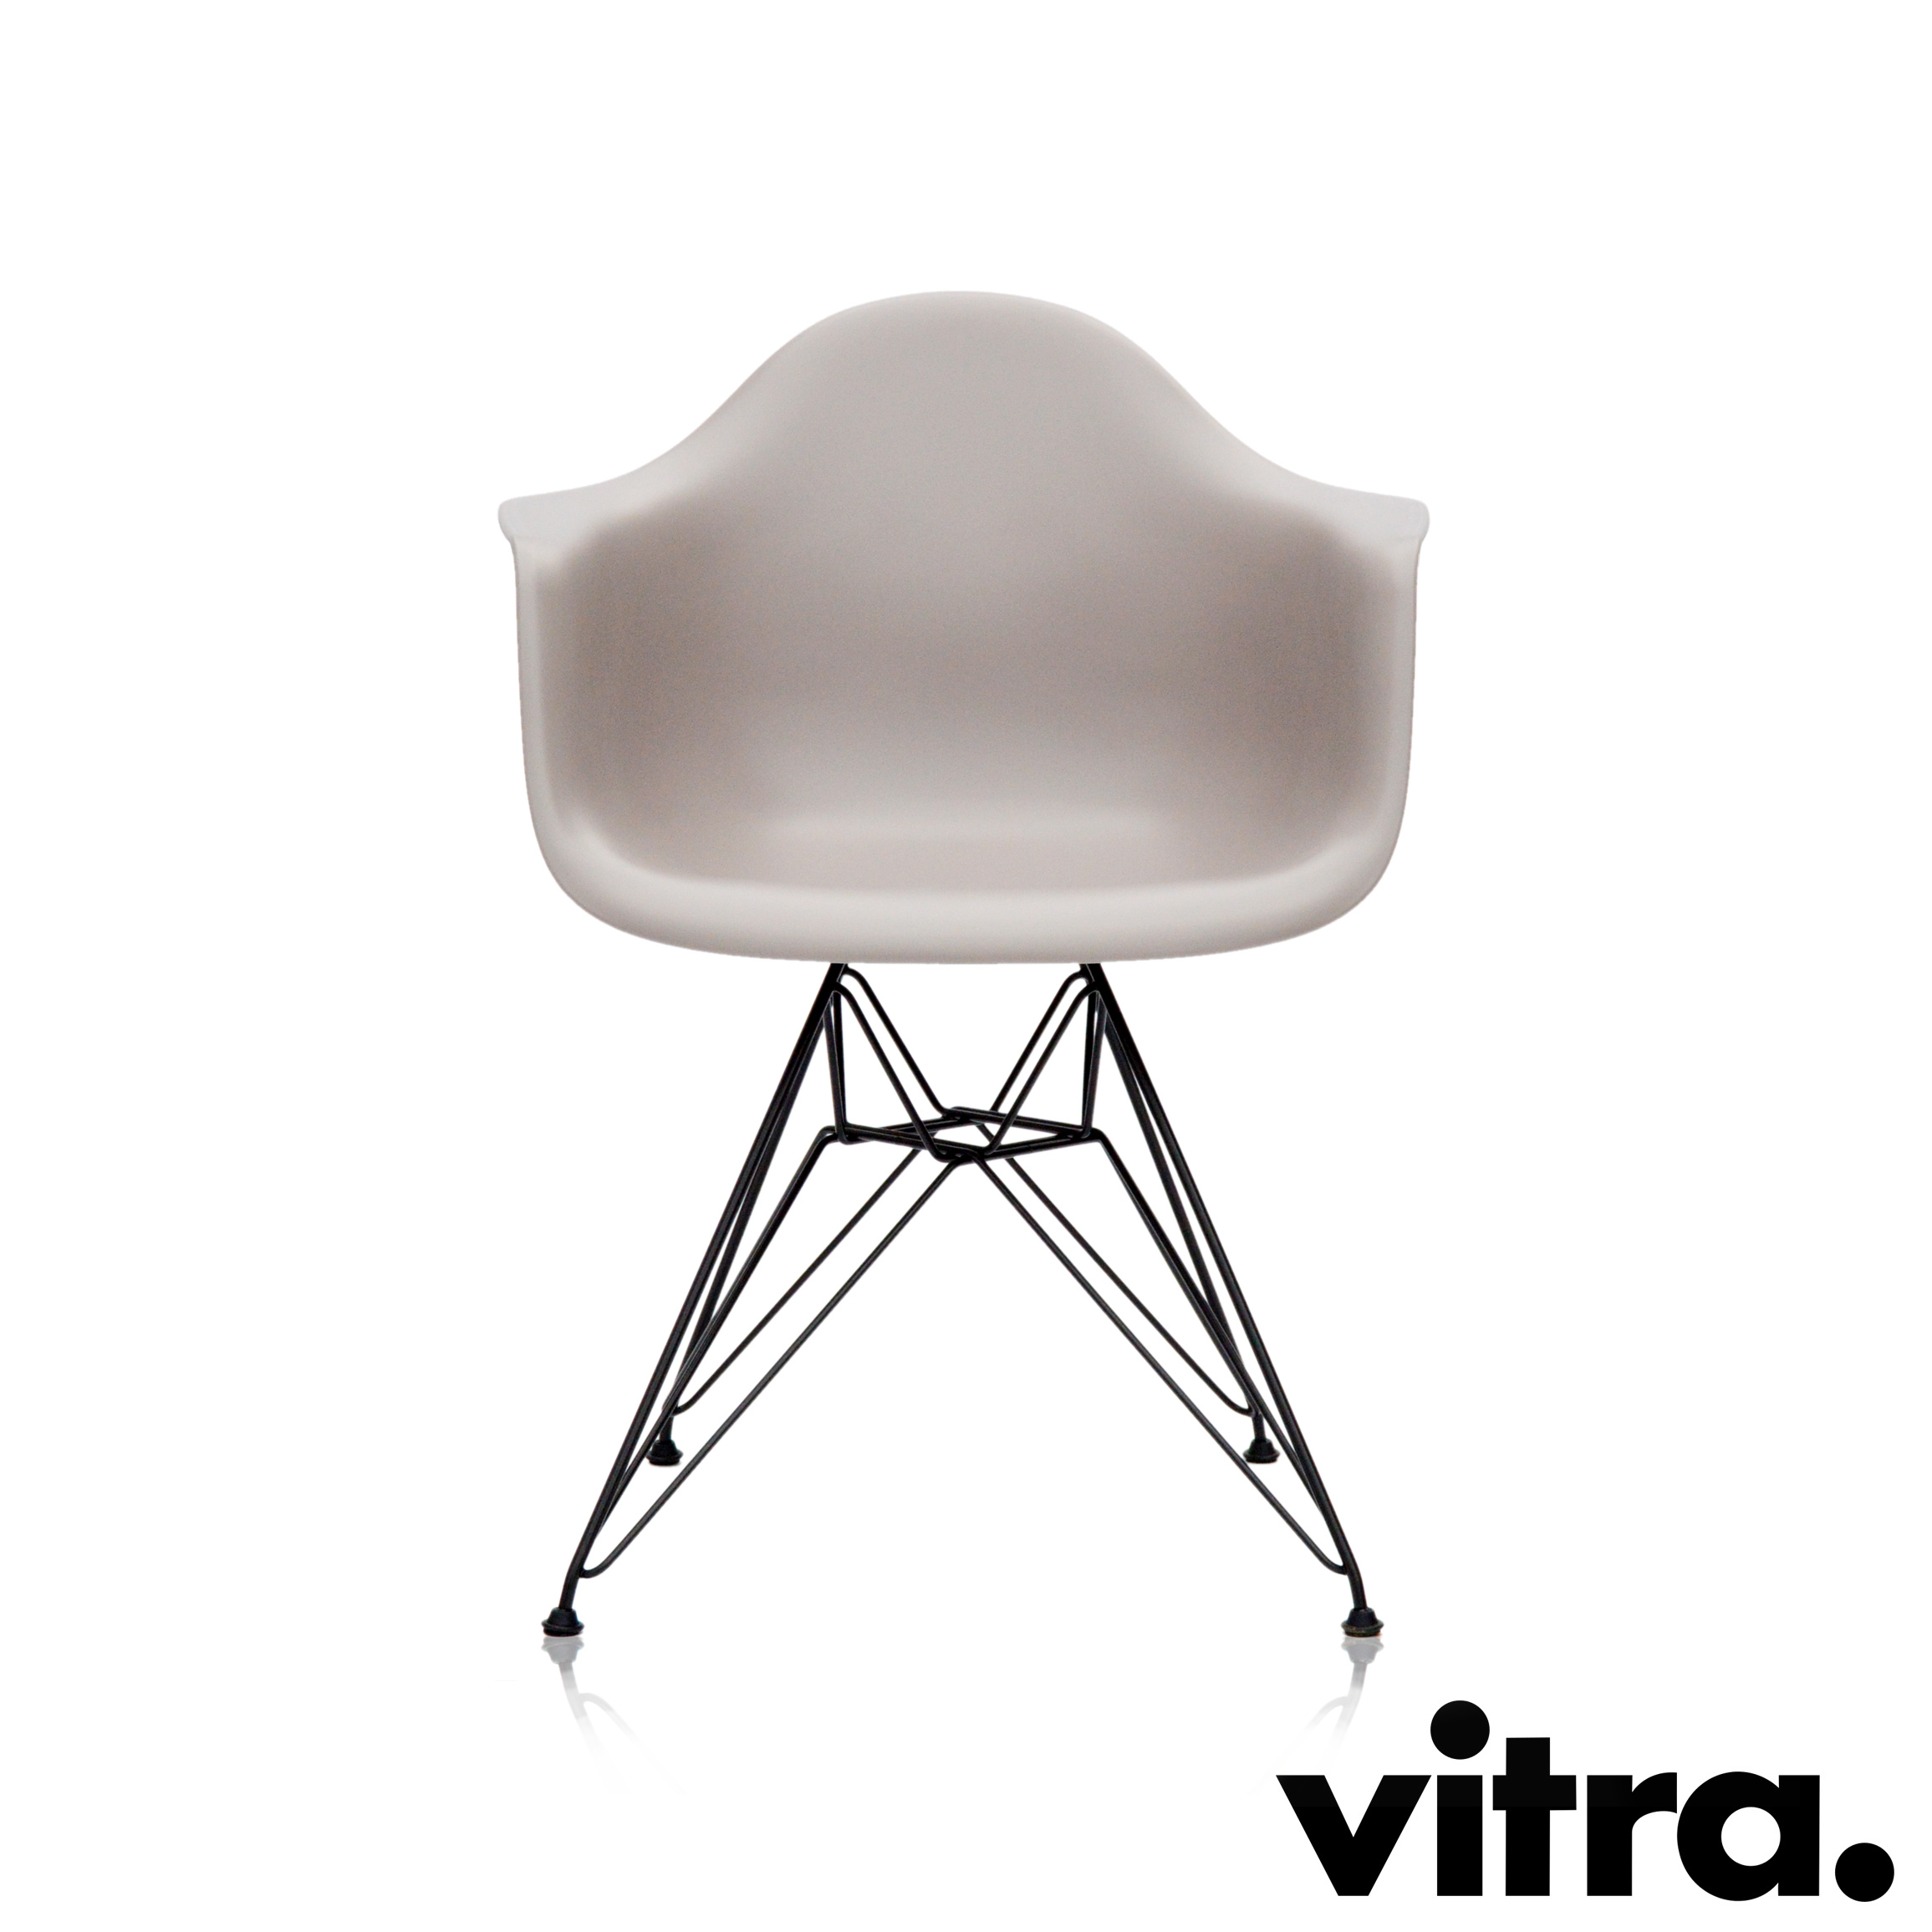 vitra eames stuhl gallery of eames stuhl dss side chair. Black Bedroom Furniture Sets. Home Design Ideas